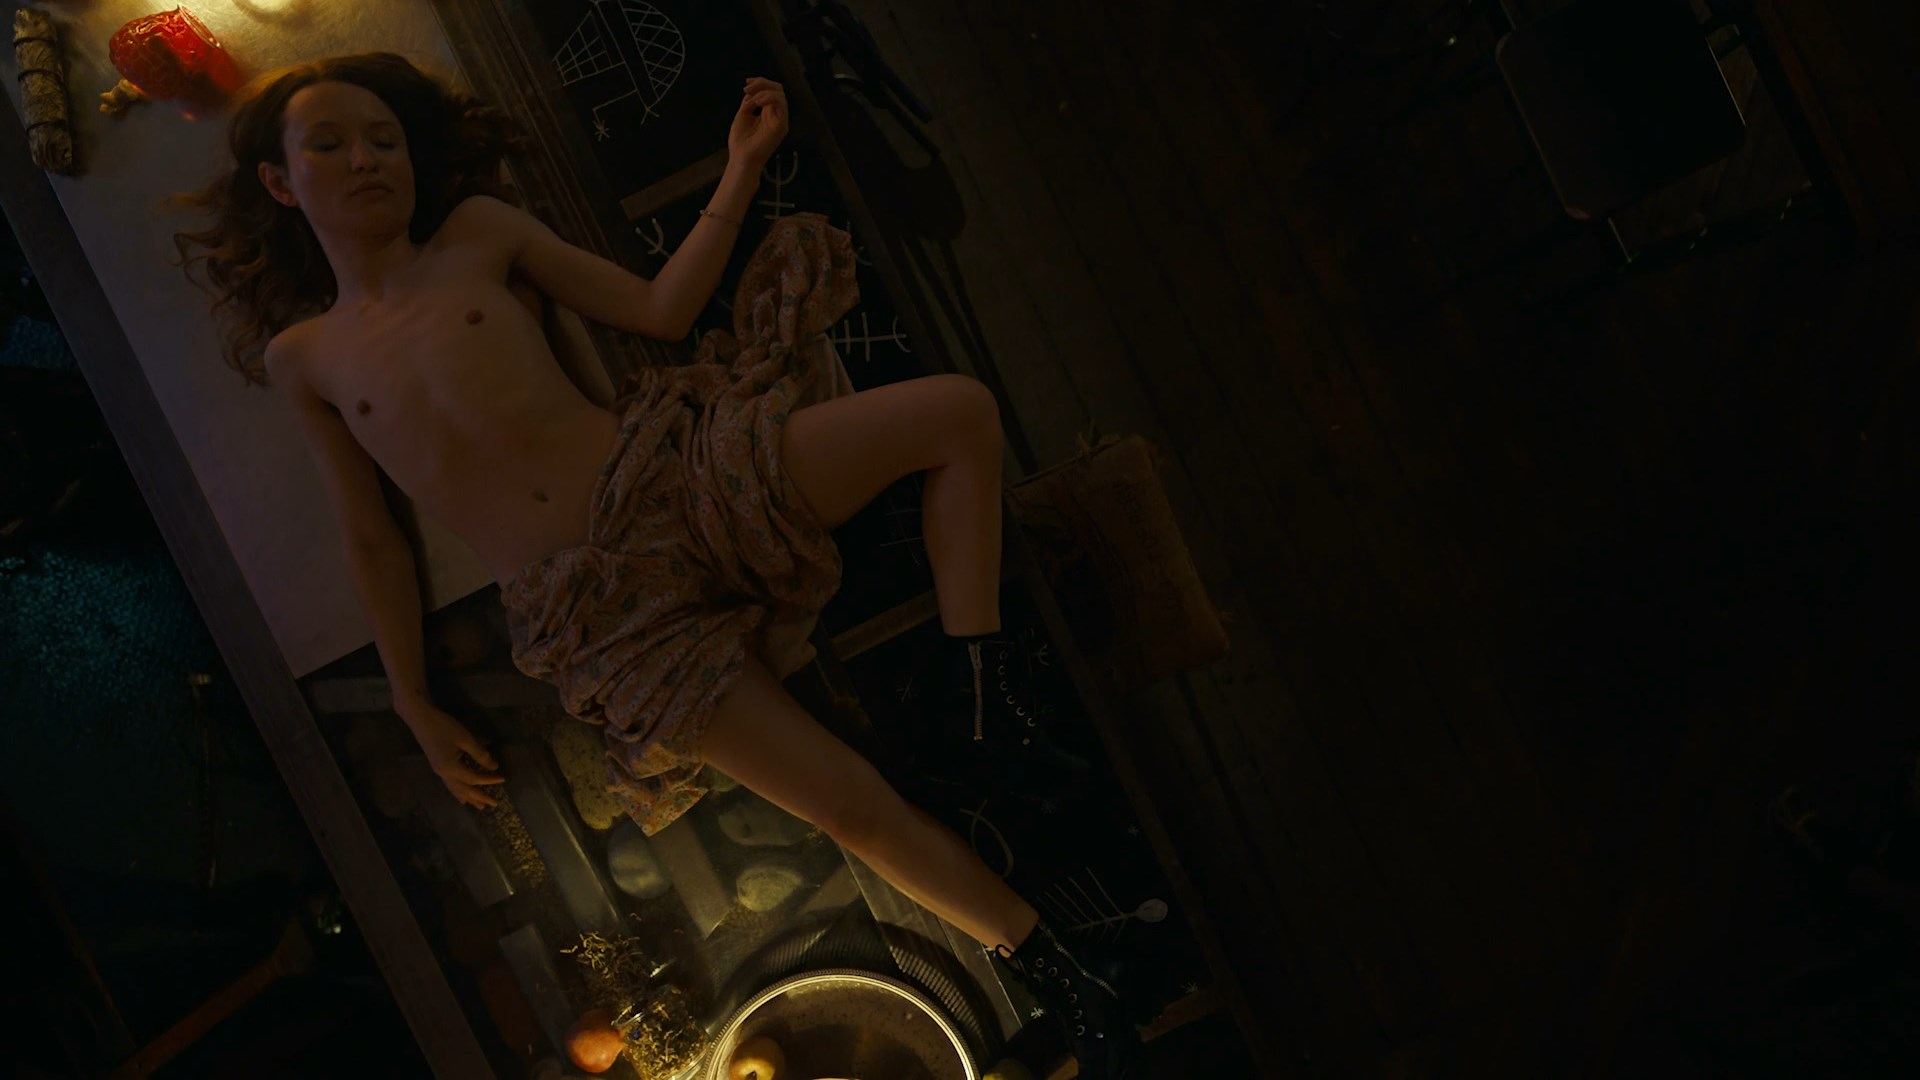 Emily browning nude american gods